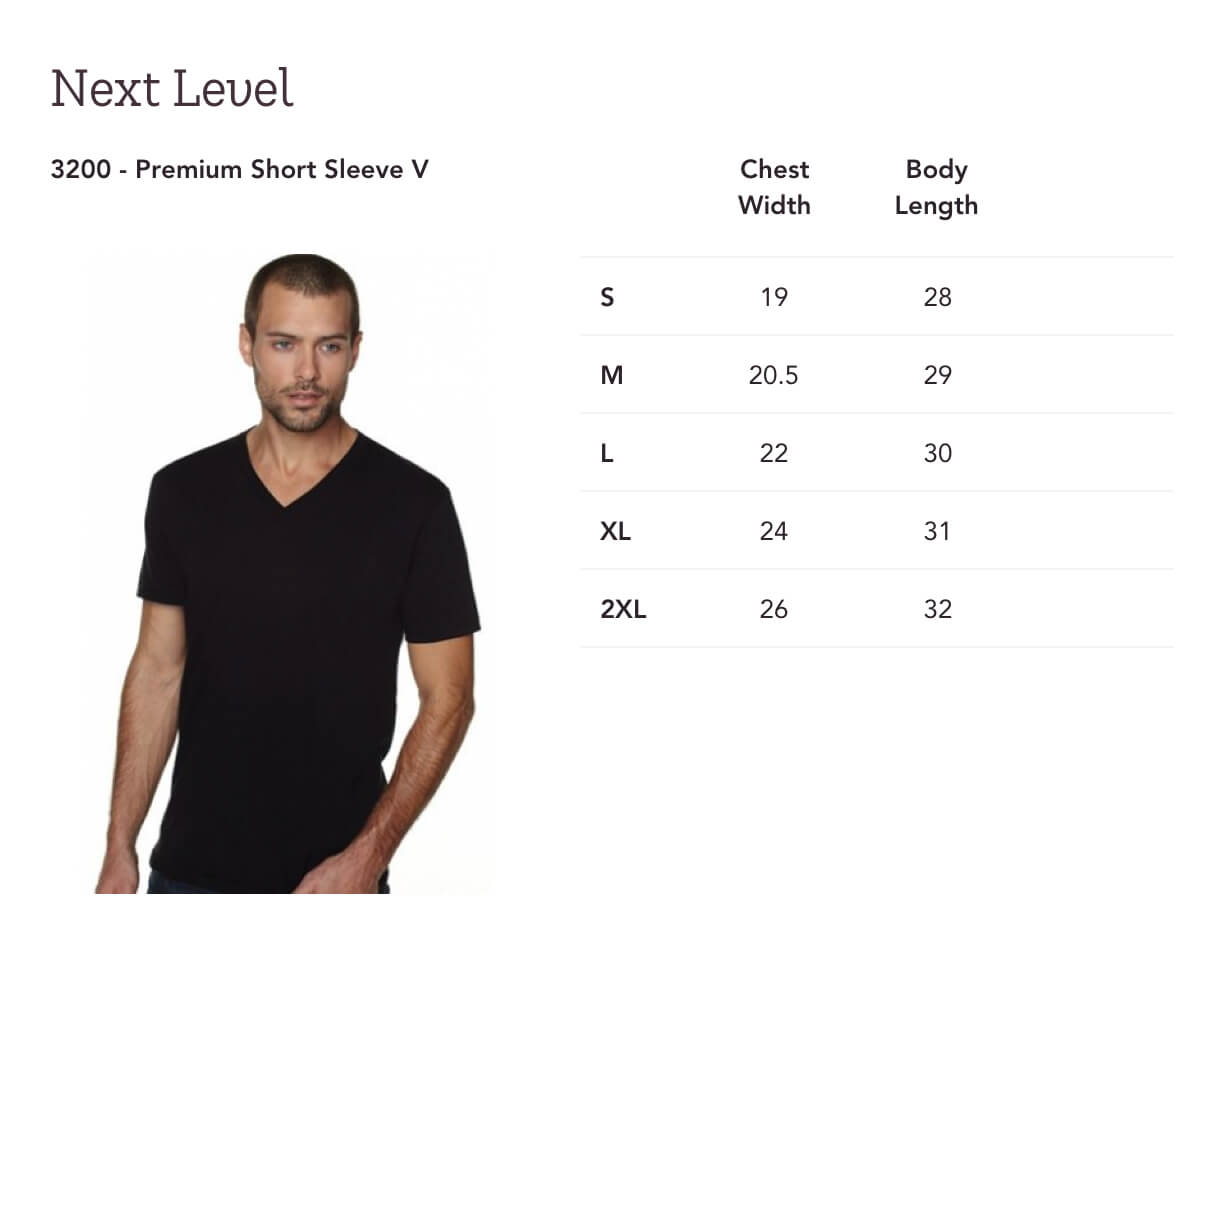 ff96b6a10 These premium v-neck tees are always kept in-stock at our vendor. This  means production time is limited to just the time it takes to print and  package (avg.